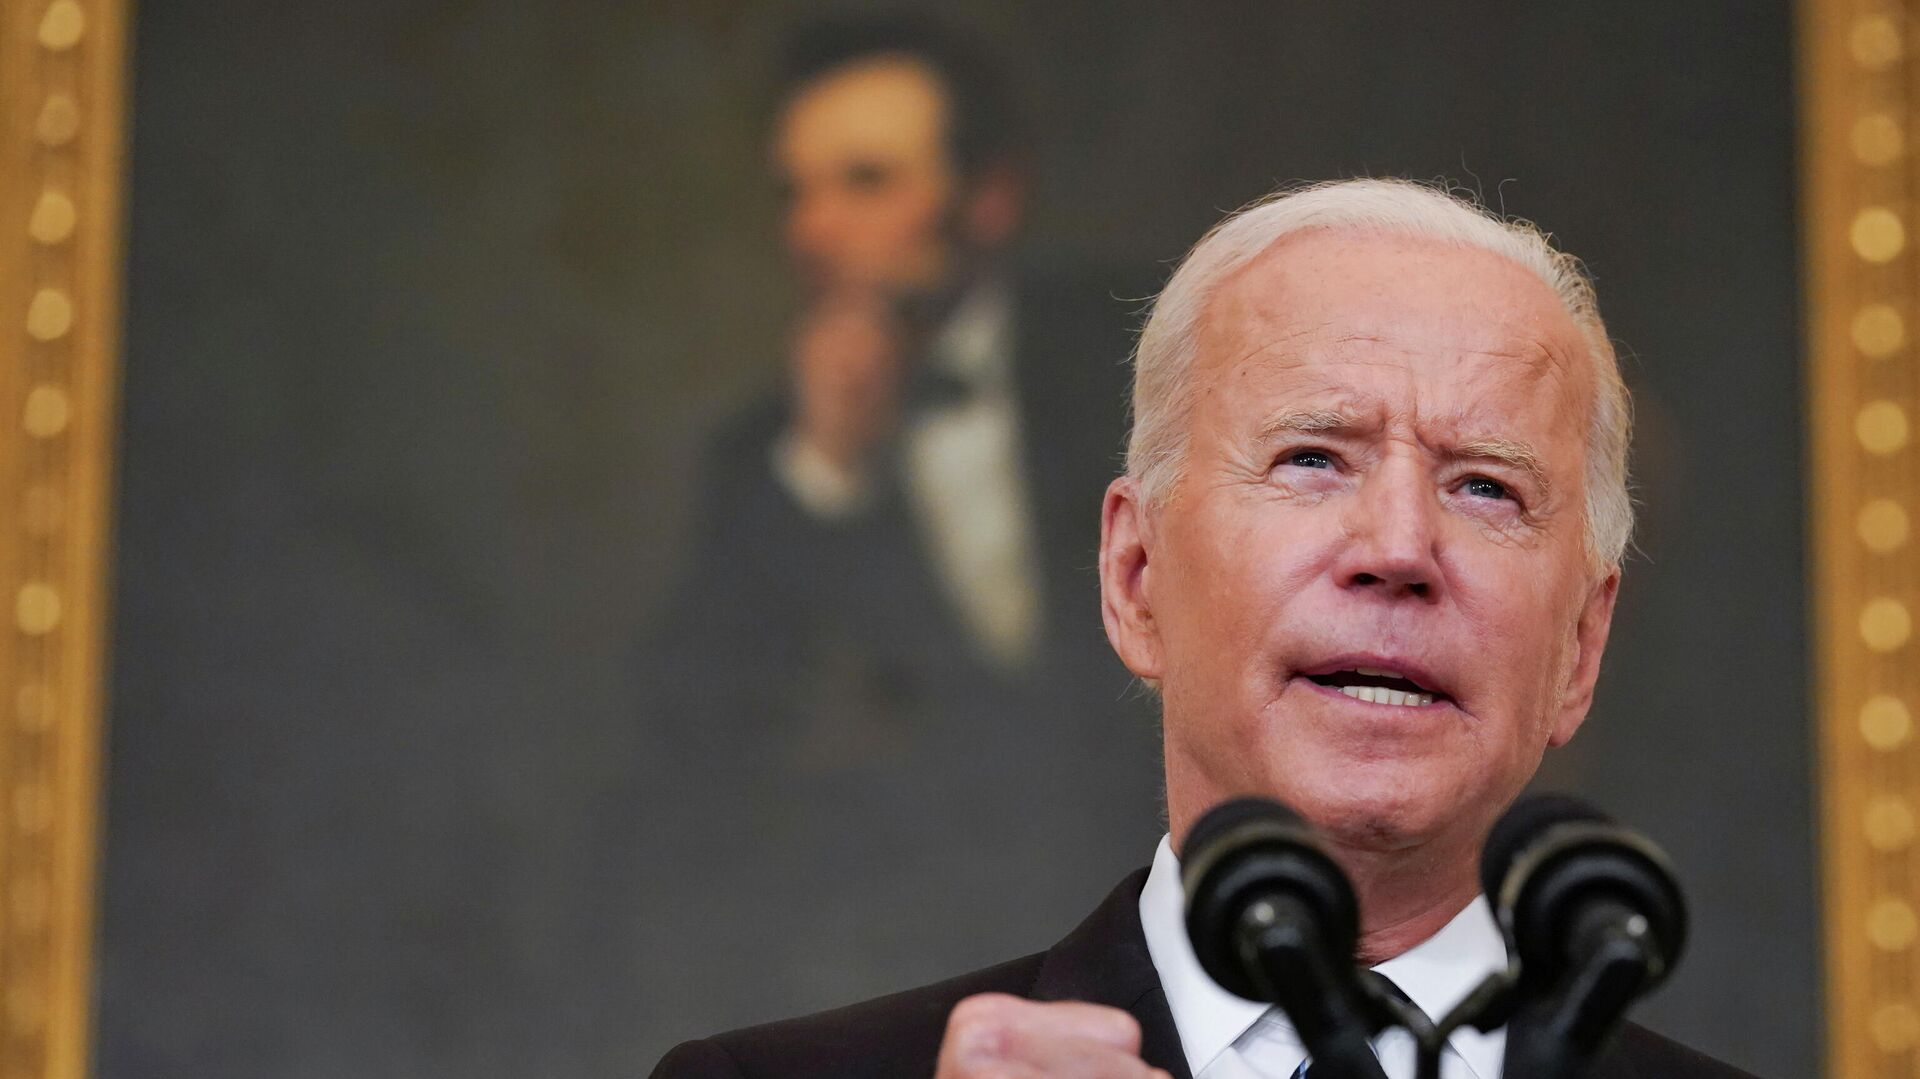 US President Joe Biden delivers remarks on the Delta variant and his administration's efforts to increase vaccinations, from the State Dining Room of the White House in Washington, US, September 9, 2021 - Sputnik International, 1920, 24.09.2021